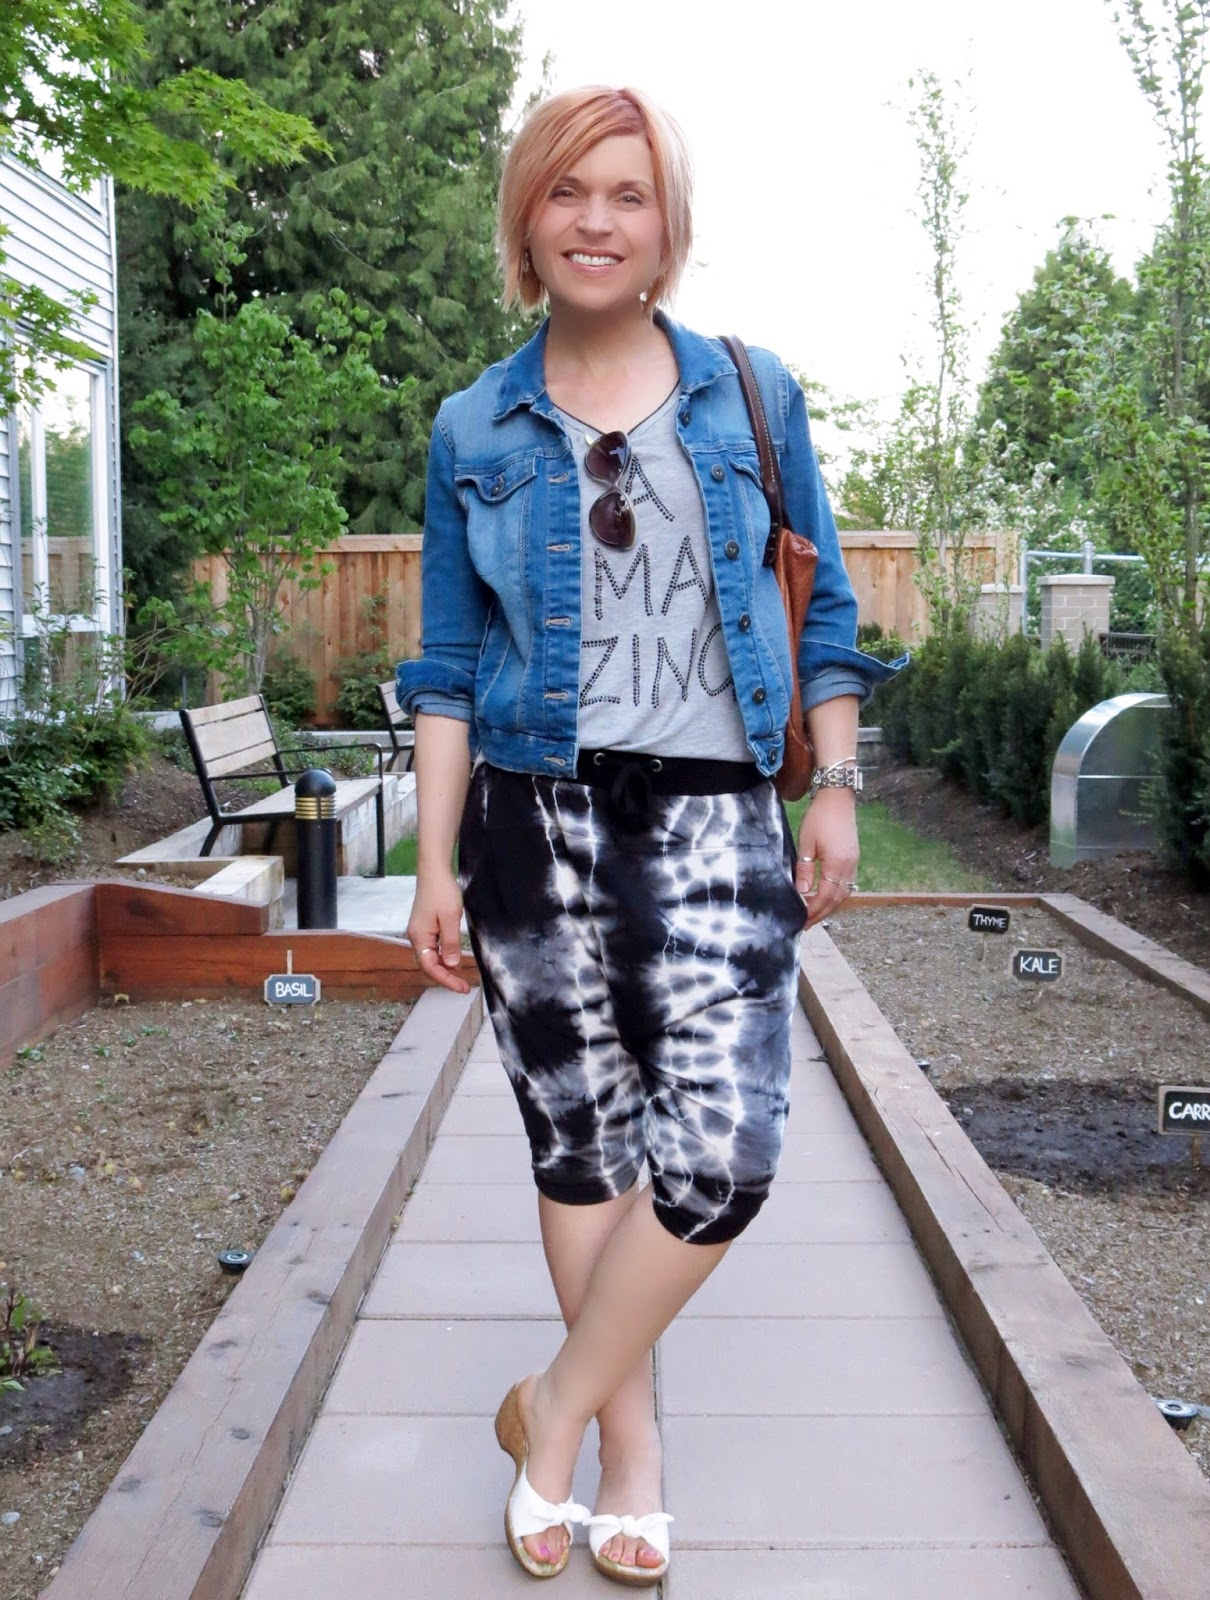 styling harem shorts with a graphic tee, denim jacket, and cork-soled slides